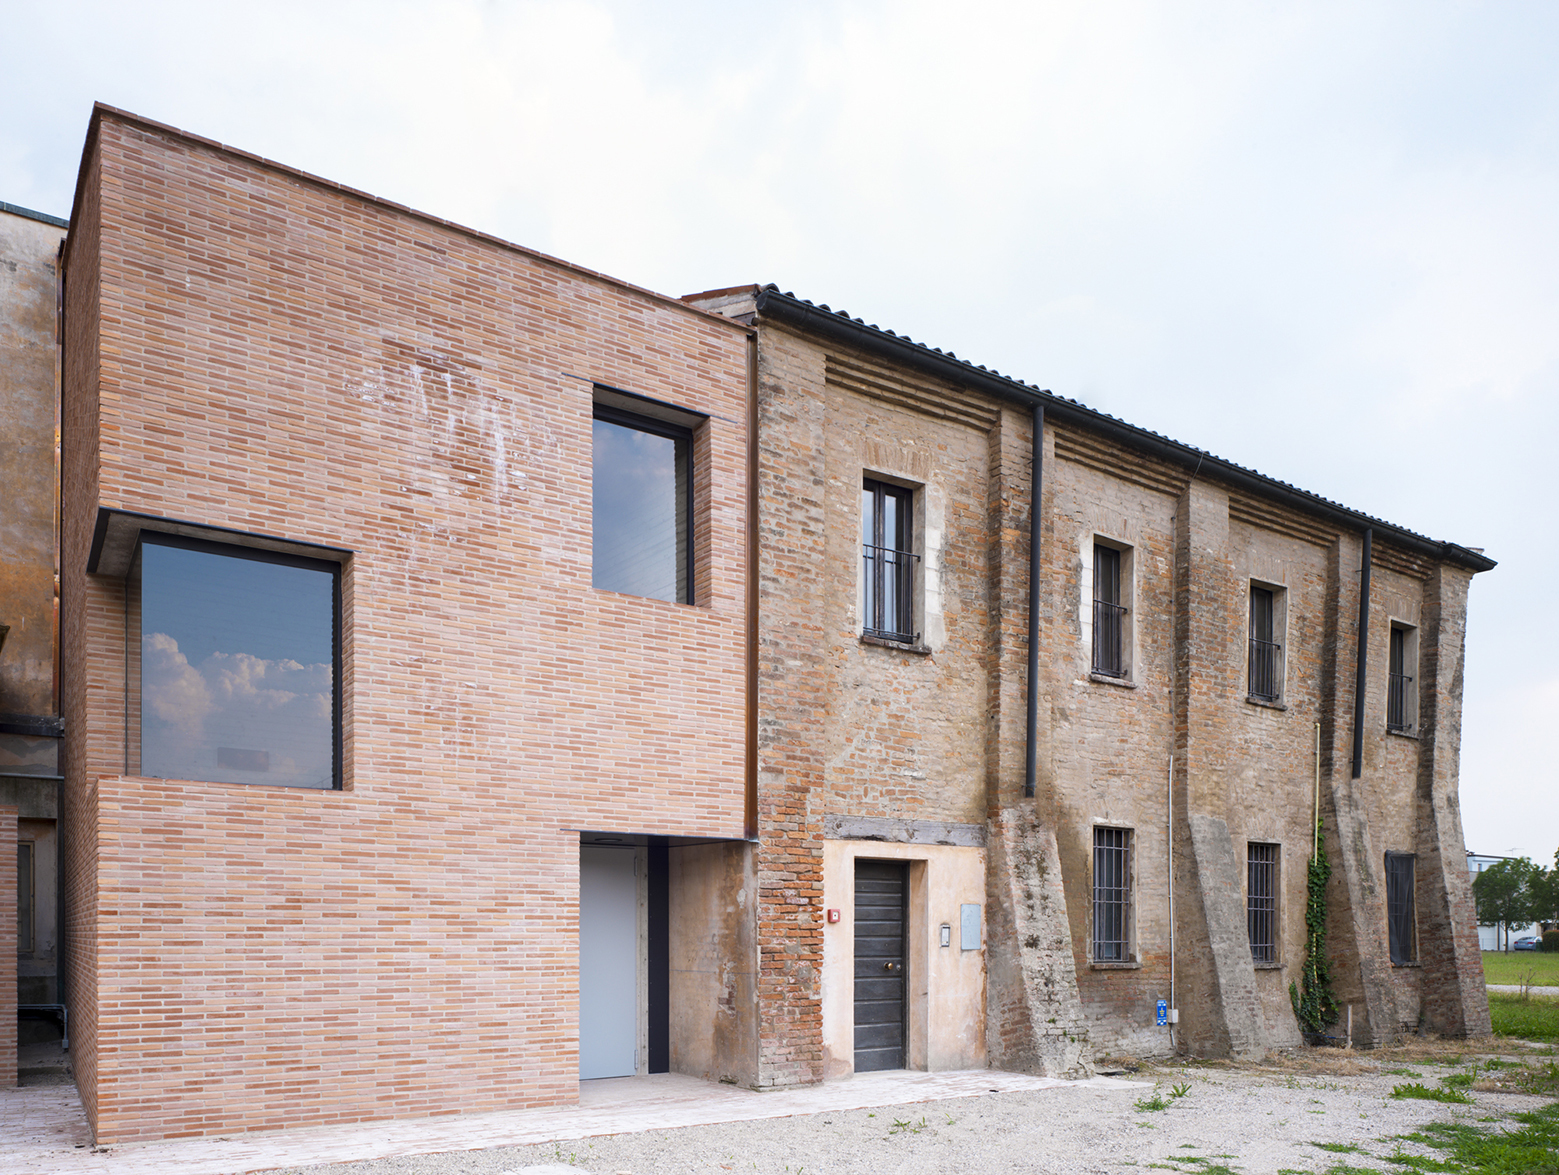 Addition to S. Maria Convent / LR-Architetti   ArchDaily